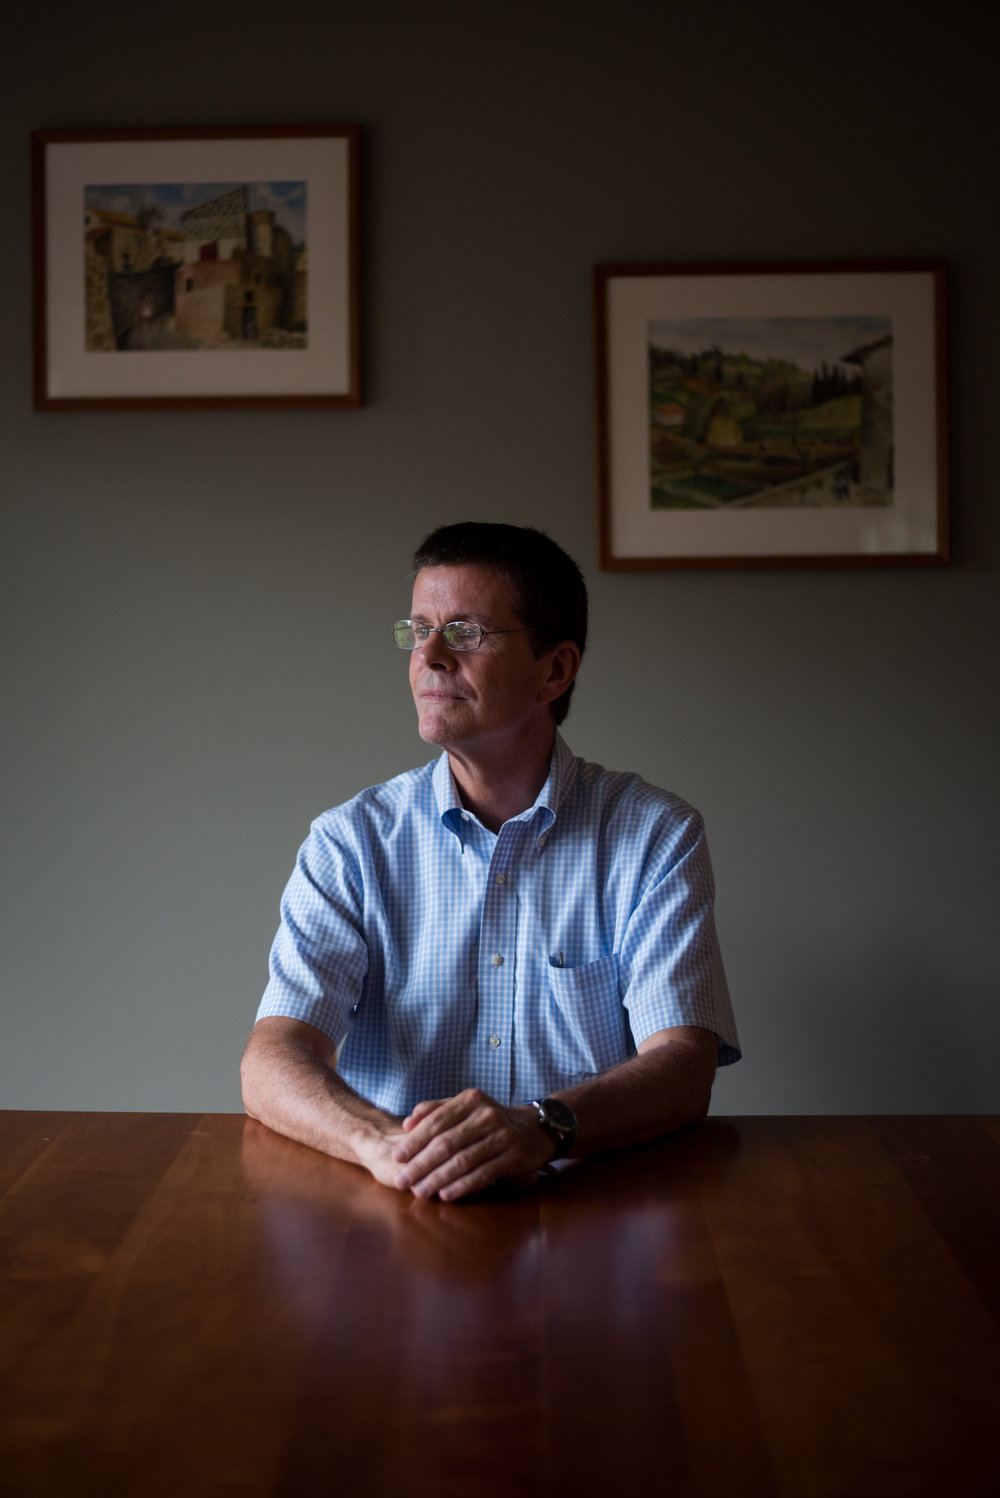 Martha's Vineyard, MA - 8/22/17 - Former CEO of the Martha's Vineyard hospital, Joe Woodin, poses for a portrait on Tuesday, August 22, 2017. Joe Woodin, the hospital's former CEO for only 13 months, was fired without warning by the board chair earlier in the summer and the community has been left with questions and little answers. (Nicholas Pfosi for The Boston Globe) Reporter: Priyanka McCluskey Topic: 24vineyard(2)